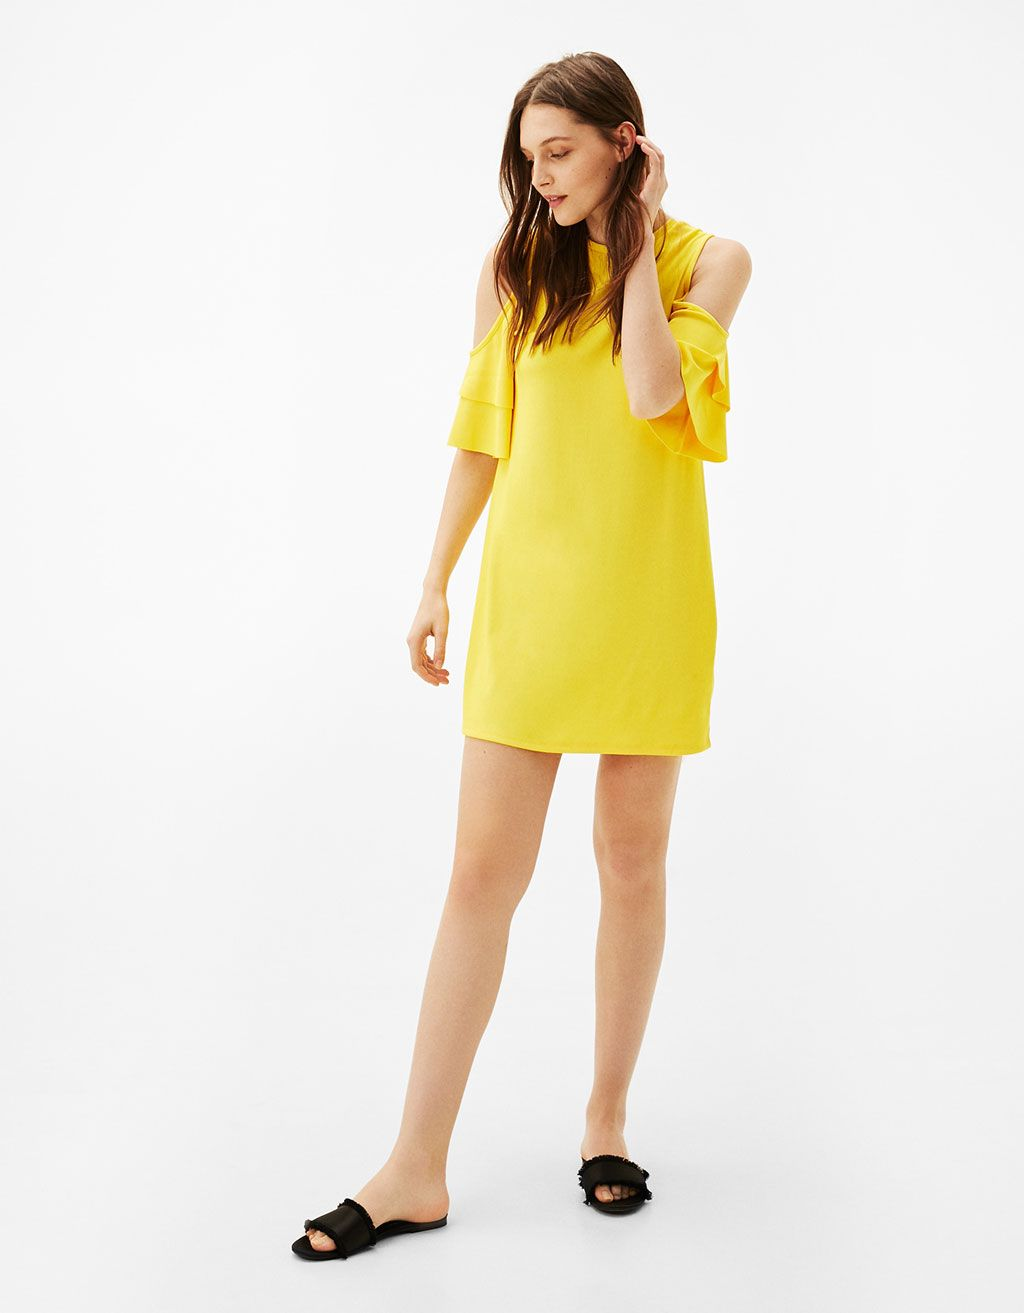 Double layer dress with ruffled sleeves and cut out shoulders - Dresses -  Bershka United Kingdom